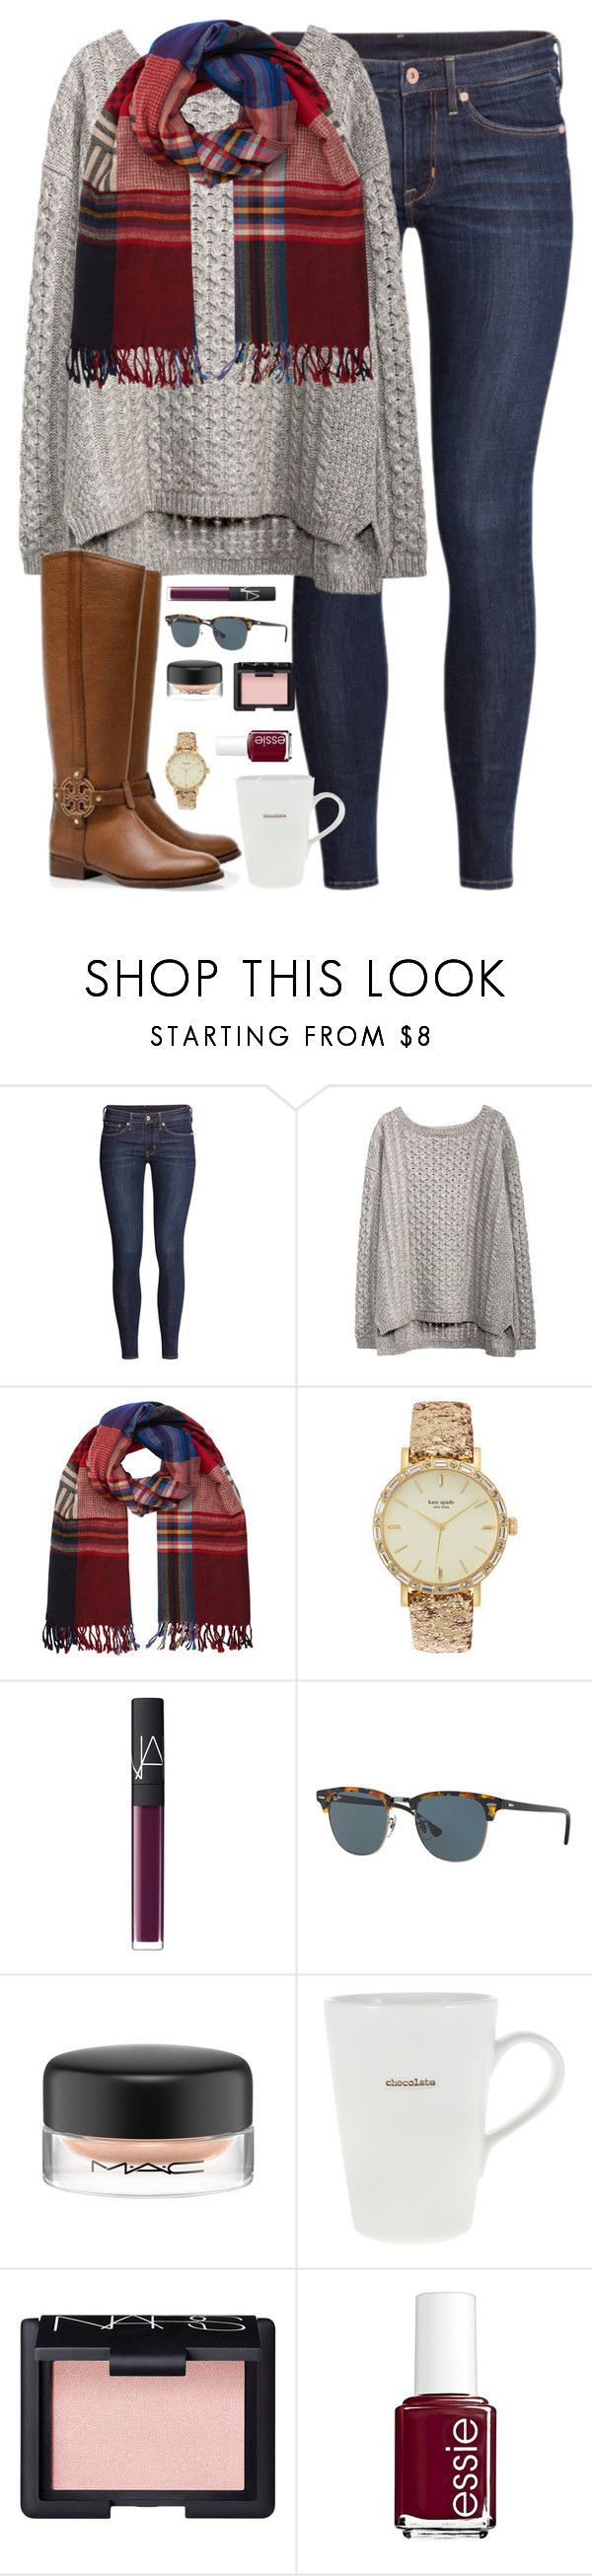 """because of you, I laugh a little harder, cry a little less, and smile a little more."" by kaley-ii ❤ liked on Polyvore featuring H&M, Accessorize, Tory Burch, Kate Spade, NARS Cosmetics, Ray-Ban, MAC Cosmetics, Keith Brymer Jones and Essie"